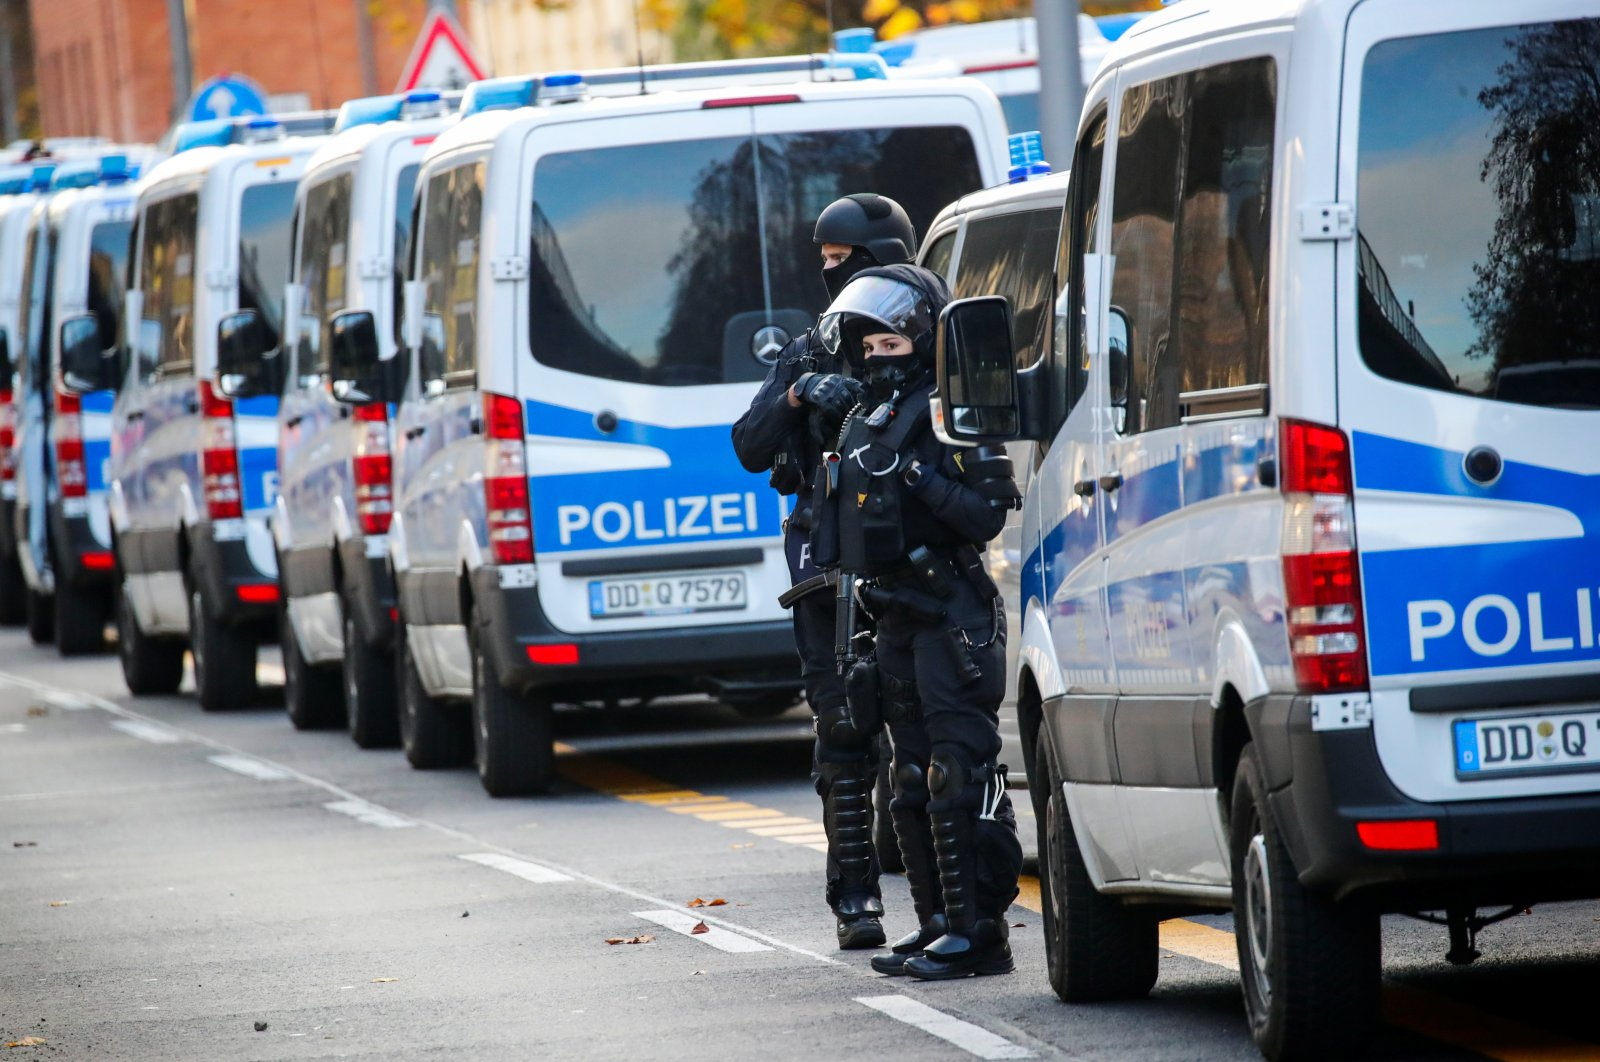 German police officers secure the area during raids in Berlin, after thieves grabbed priceless jewels from the historic Green Vault museum (Gruenes Gewoelbe) in the city of Dresden last year, in Germany, November 17, 2020. (Reuters File Photo)